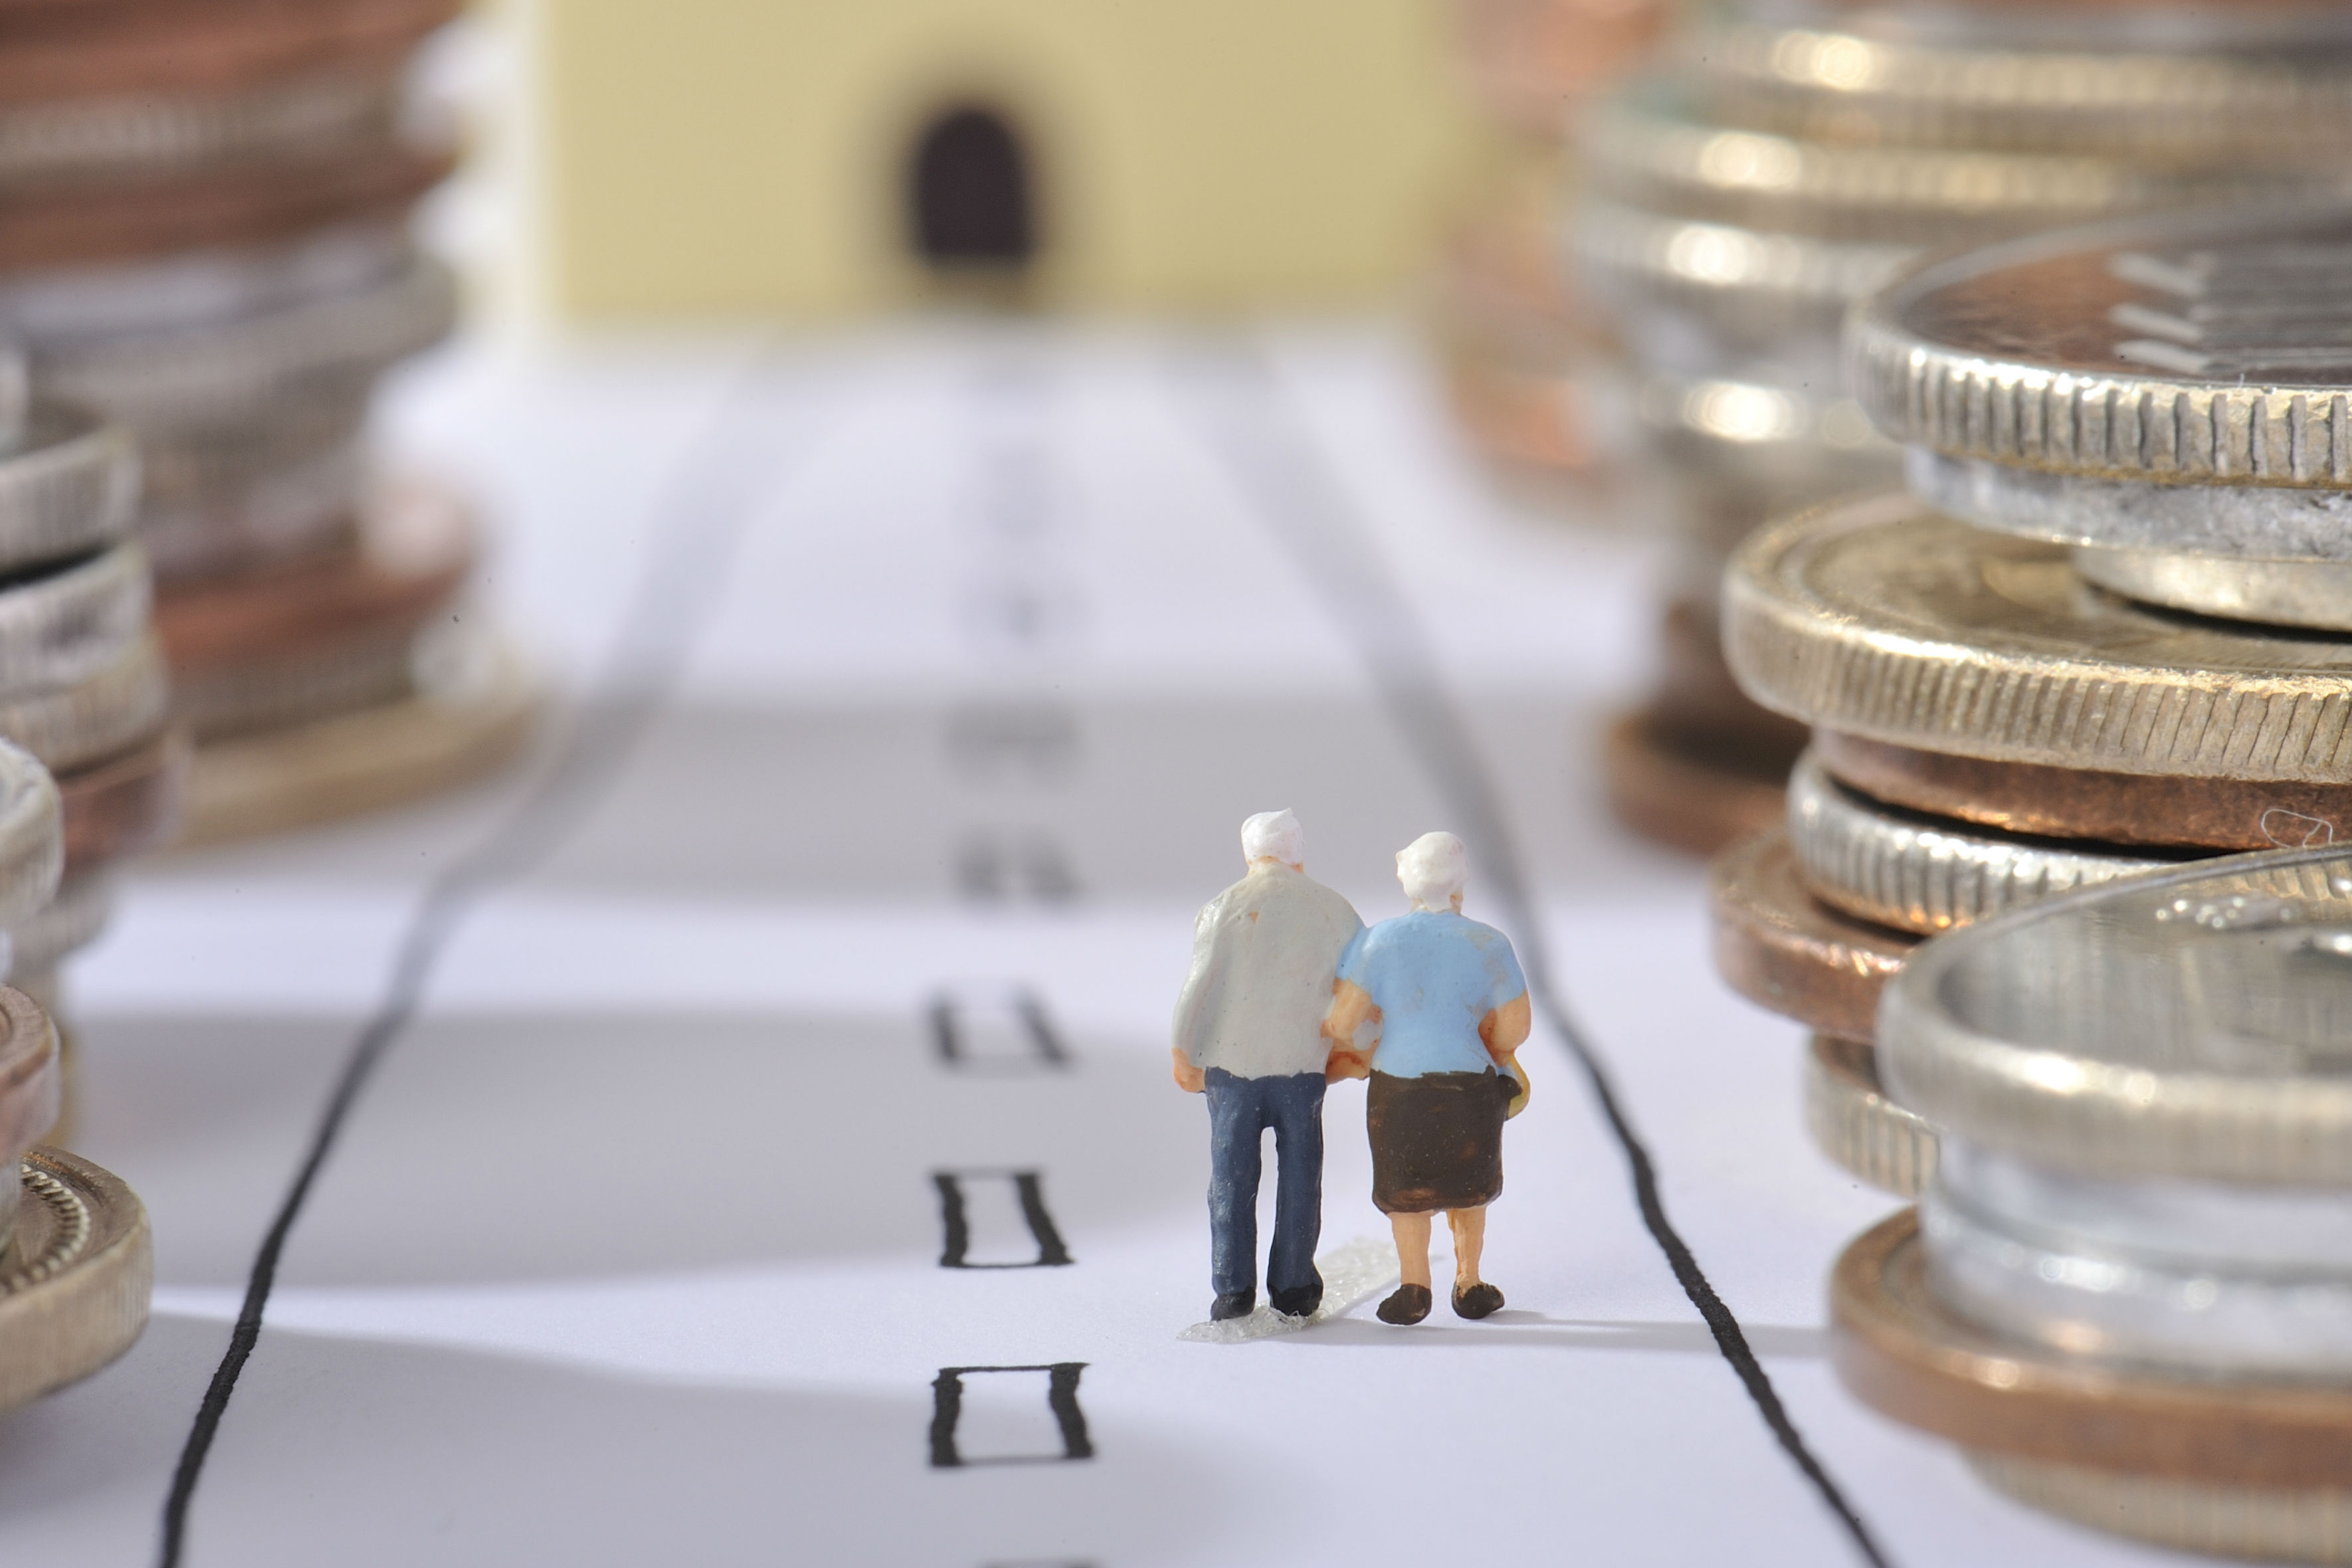 Those aged 55 have big financial decisions to make (image: Shutterstock)